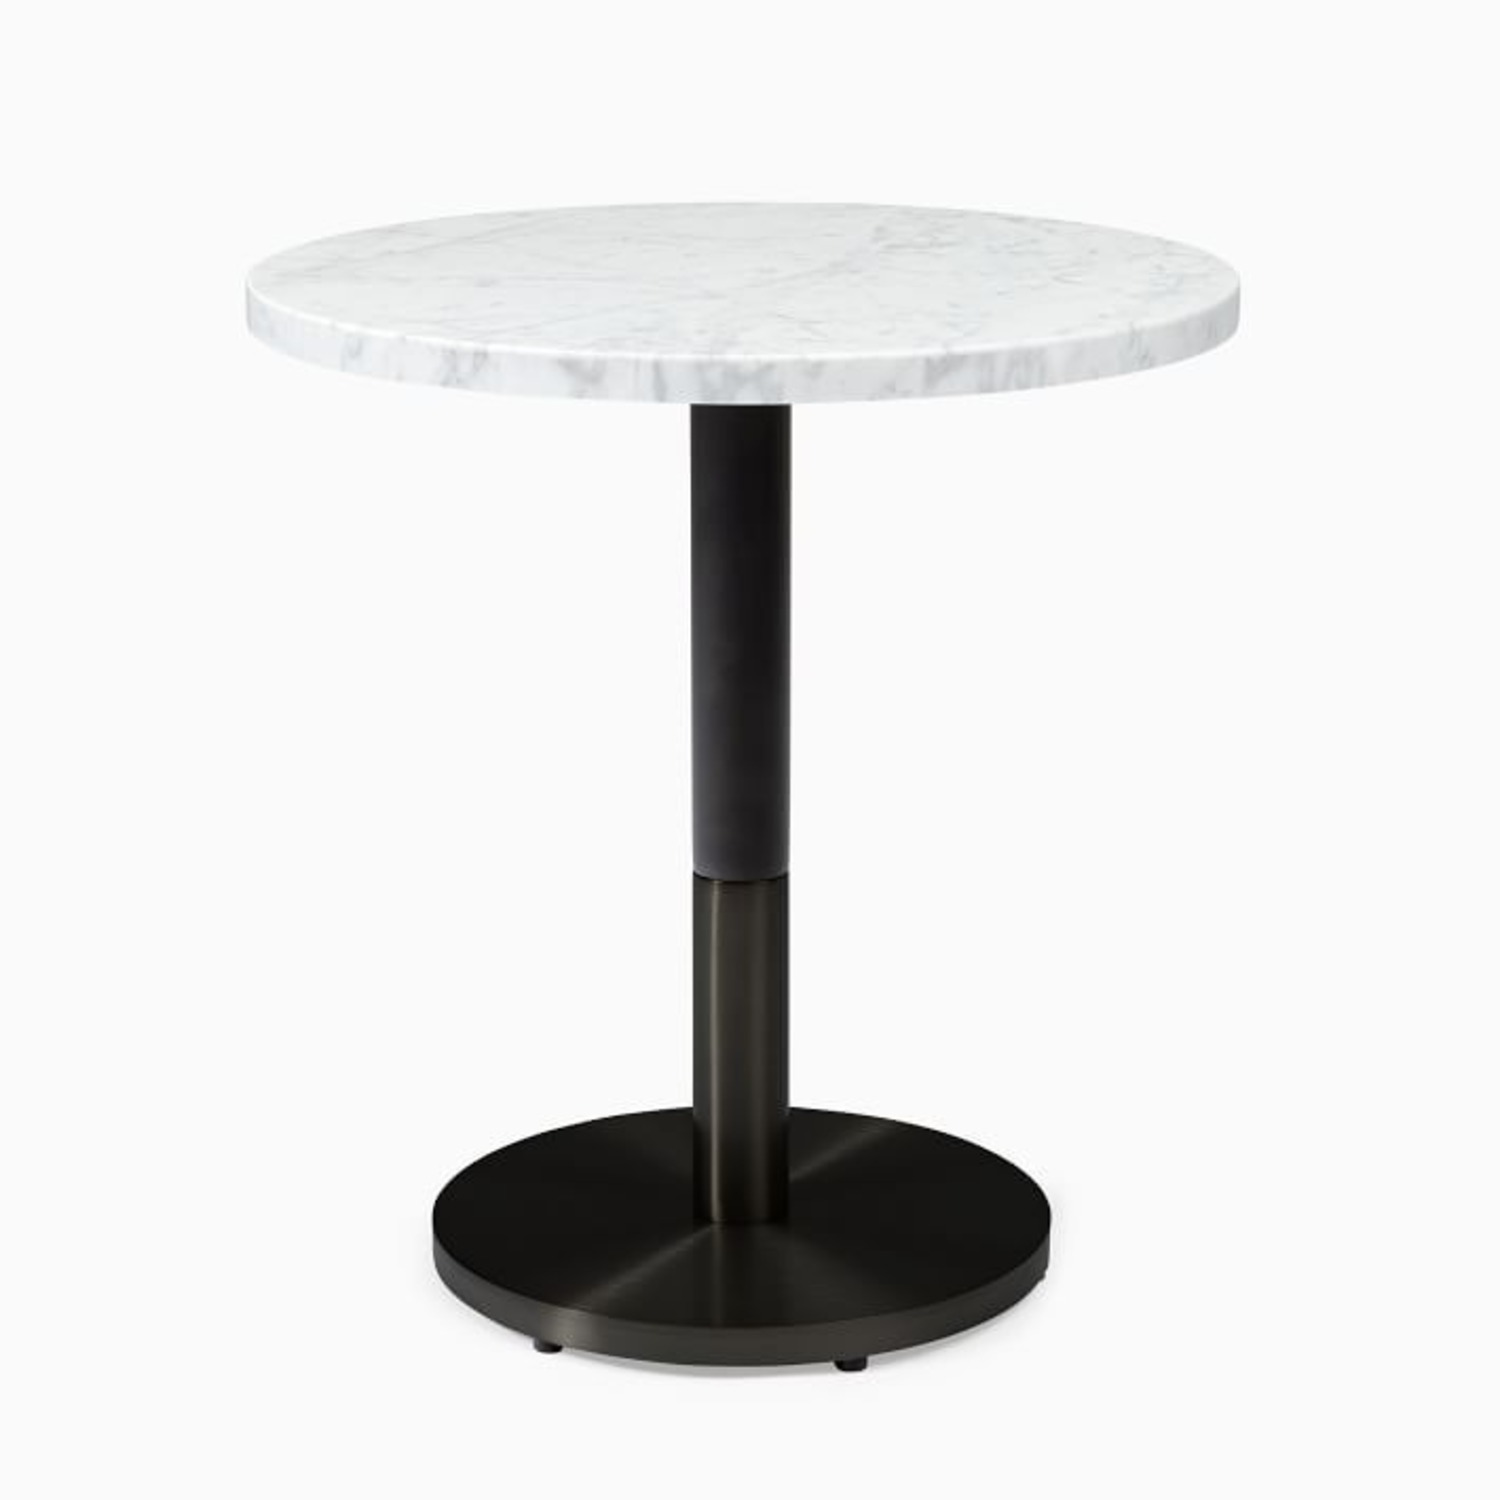 West Elm White Marble Round Bistro Table - image-1